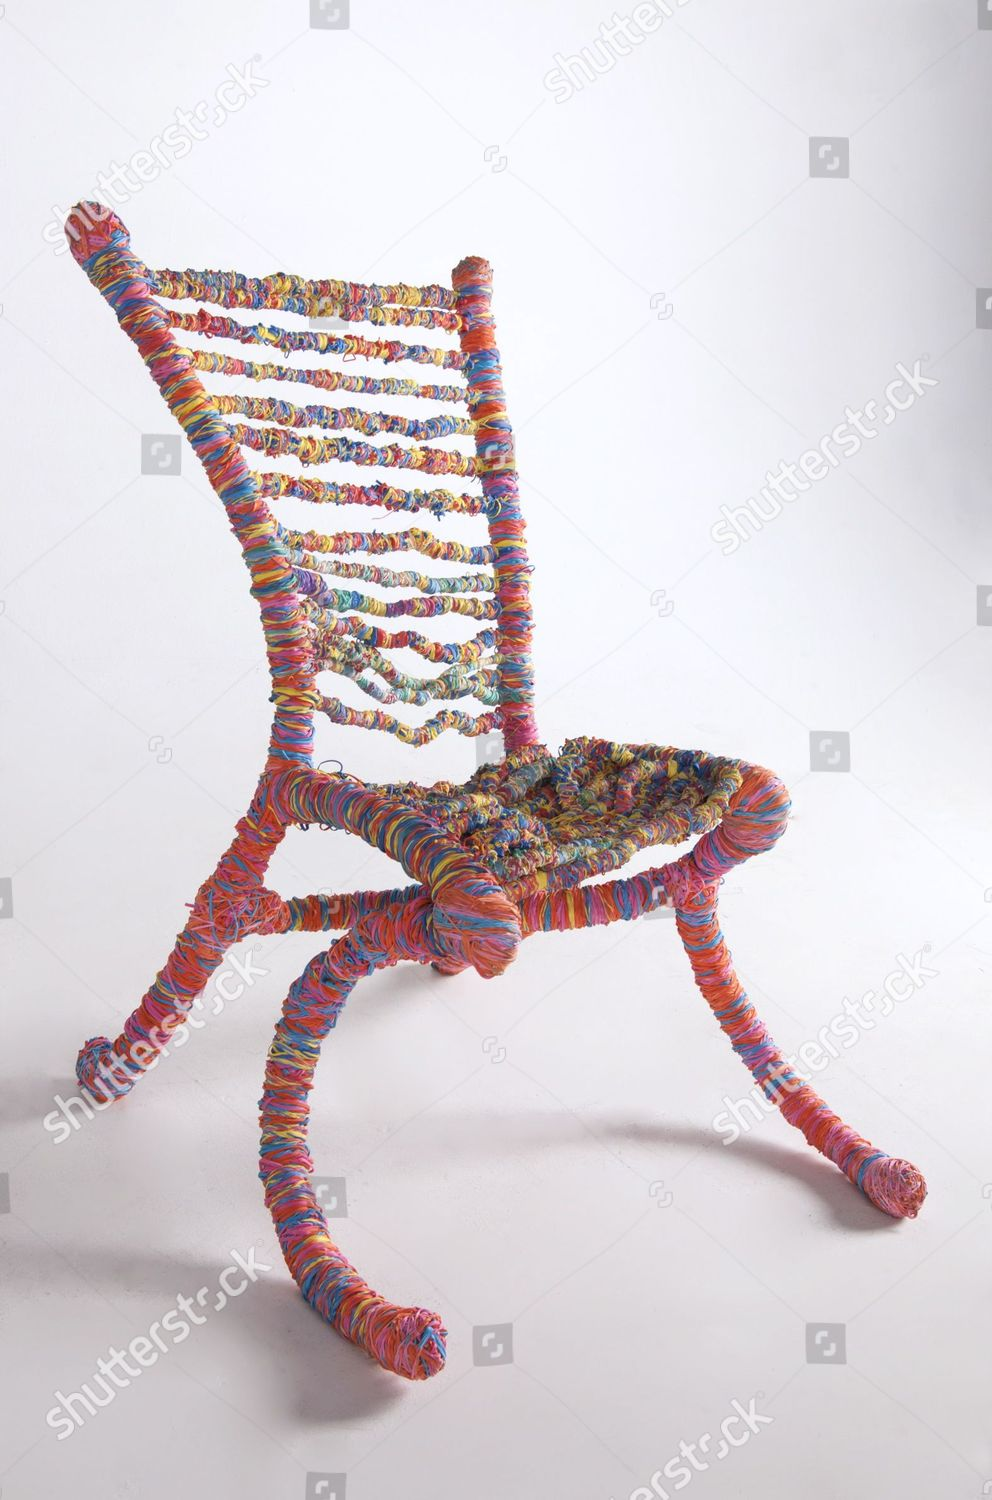 Rubber Band Chair Editorial Stock Photo Stock Image Shutterstock